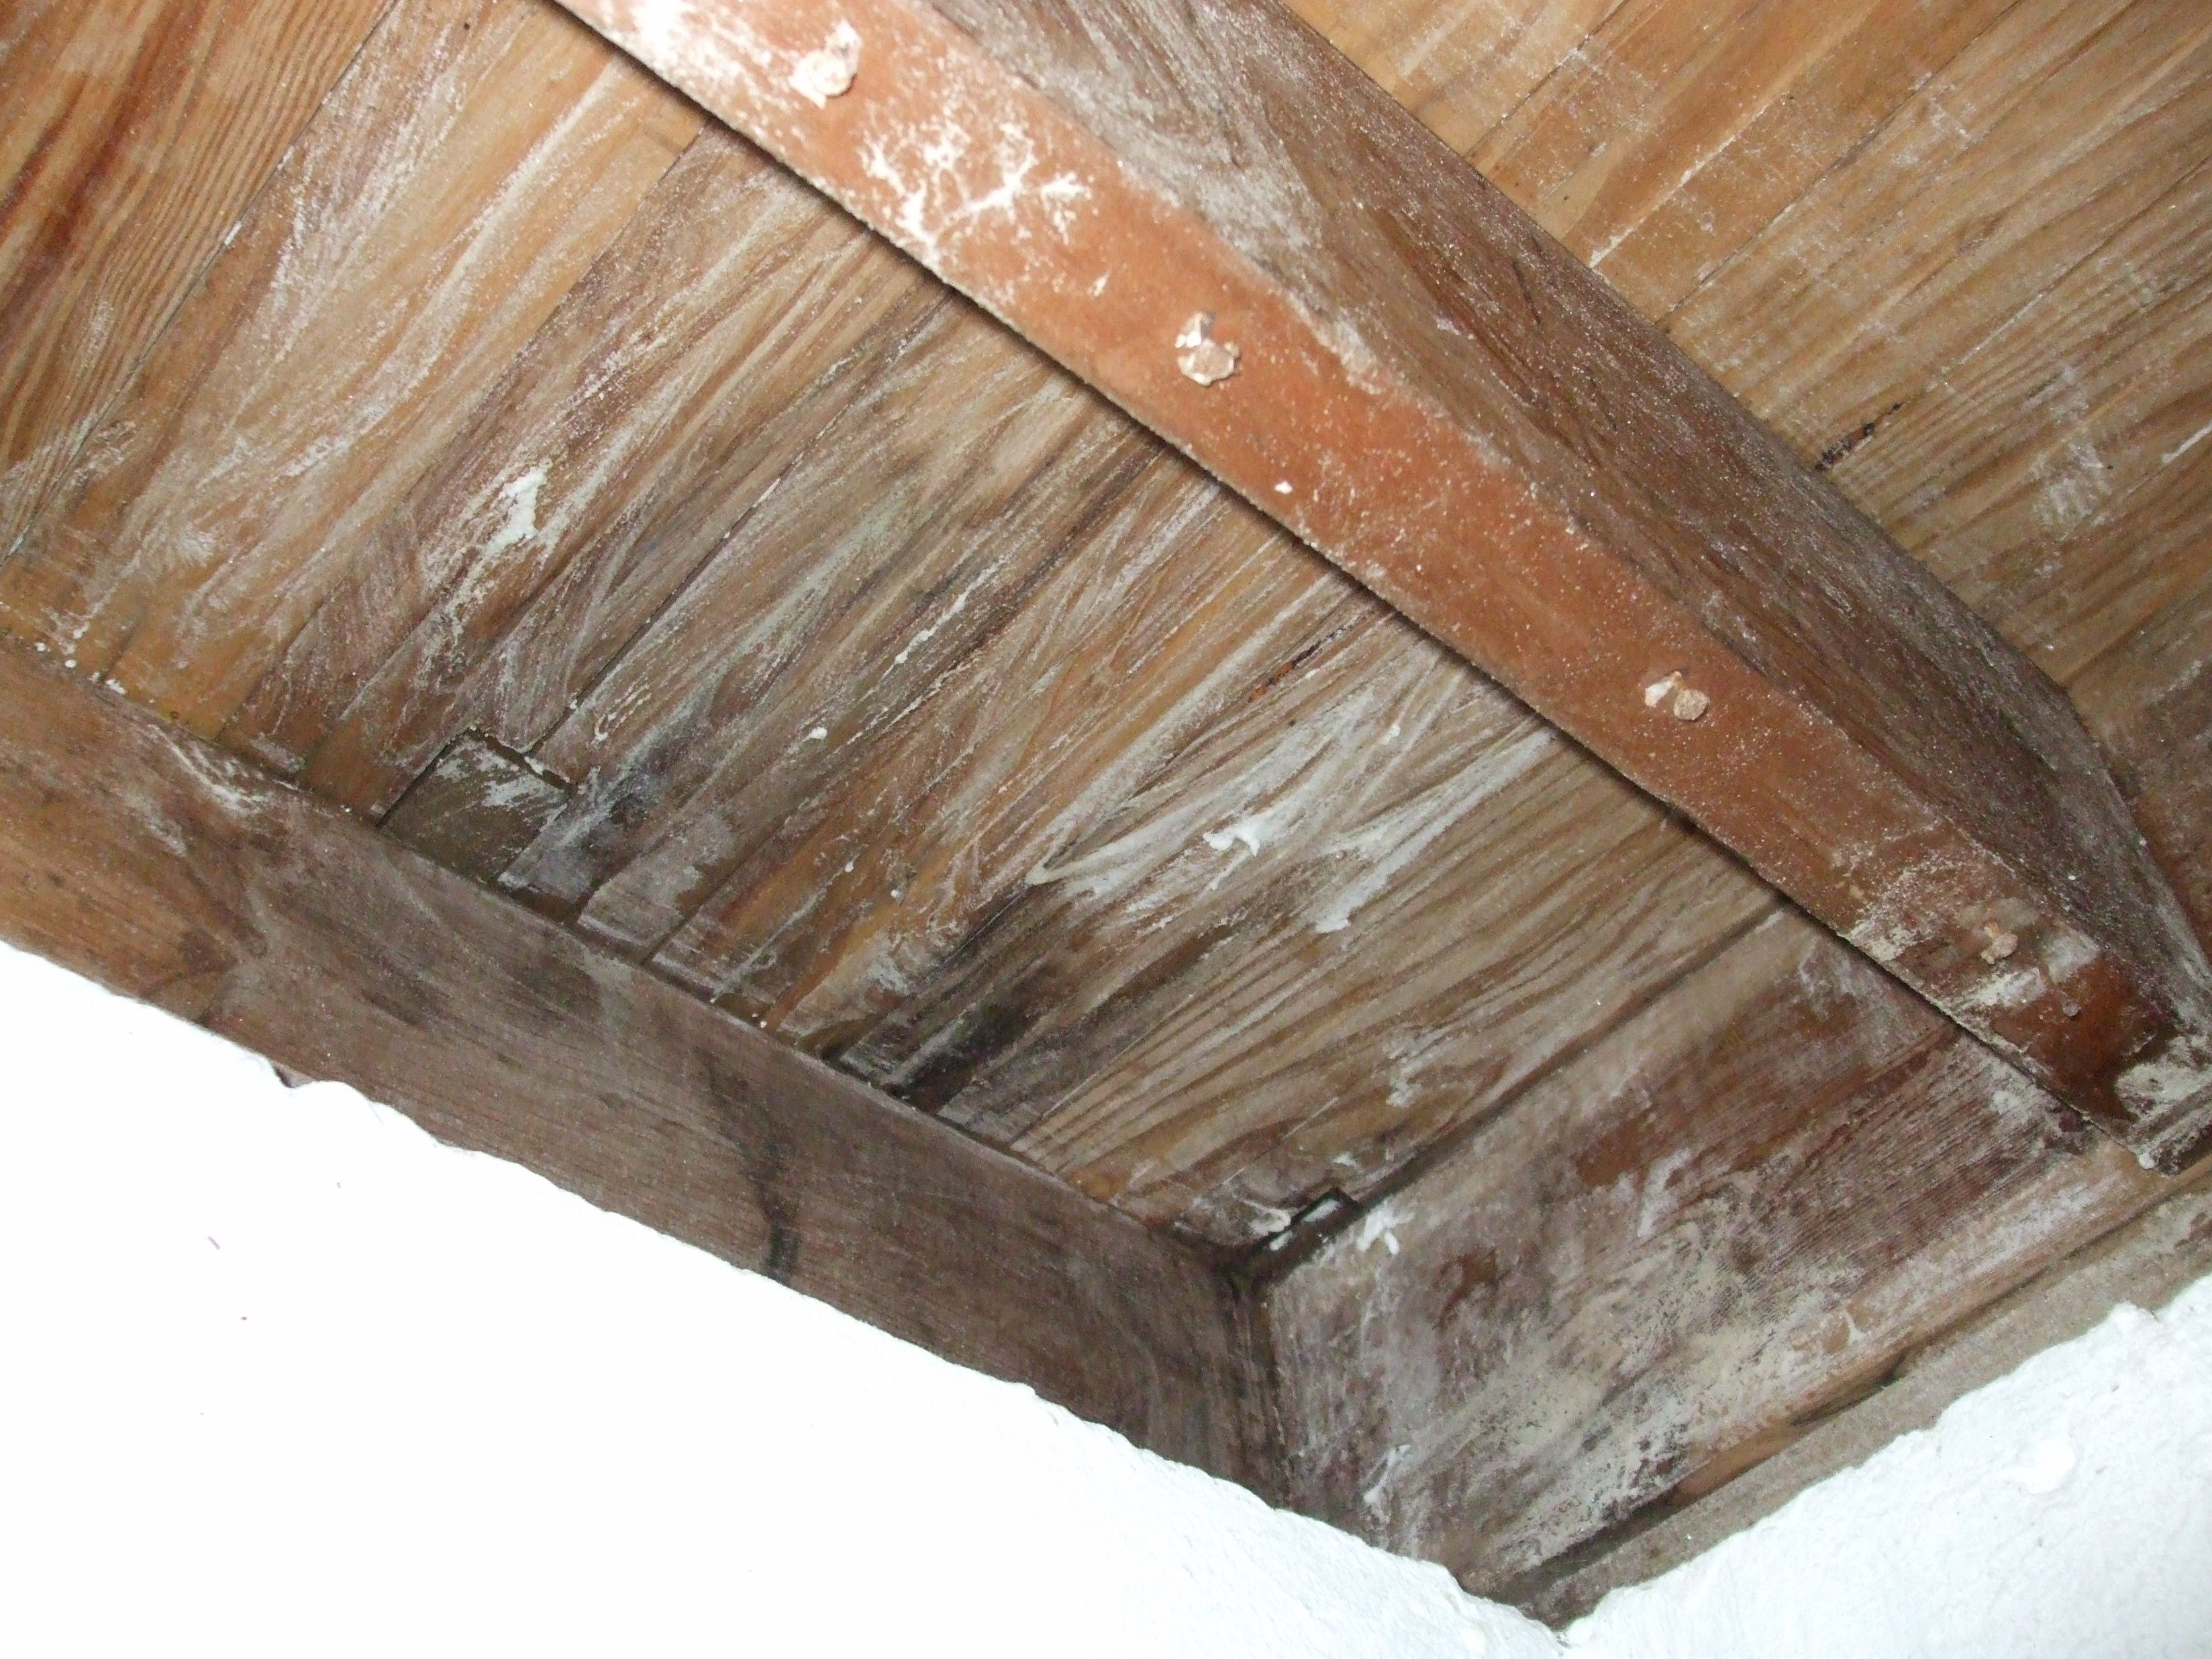 How To Treat A Mold Infestation On Wood With Borax 20 Mule Team